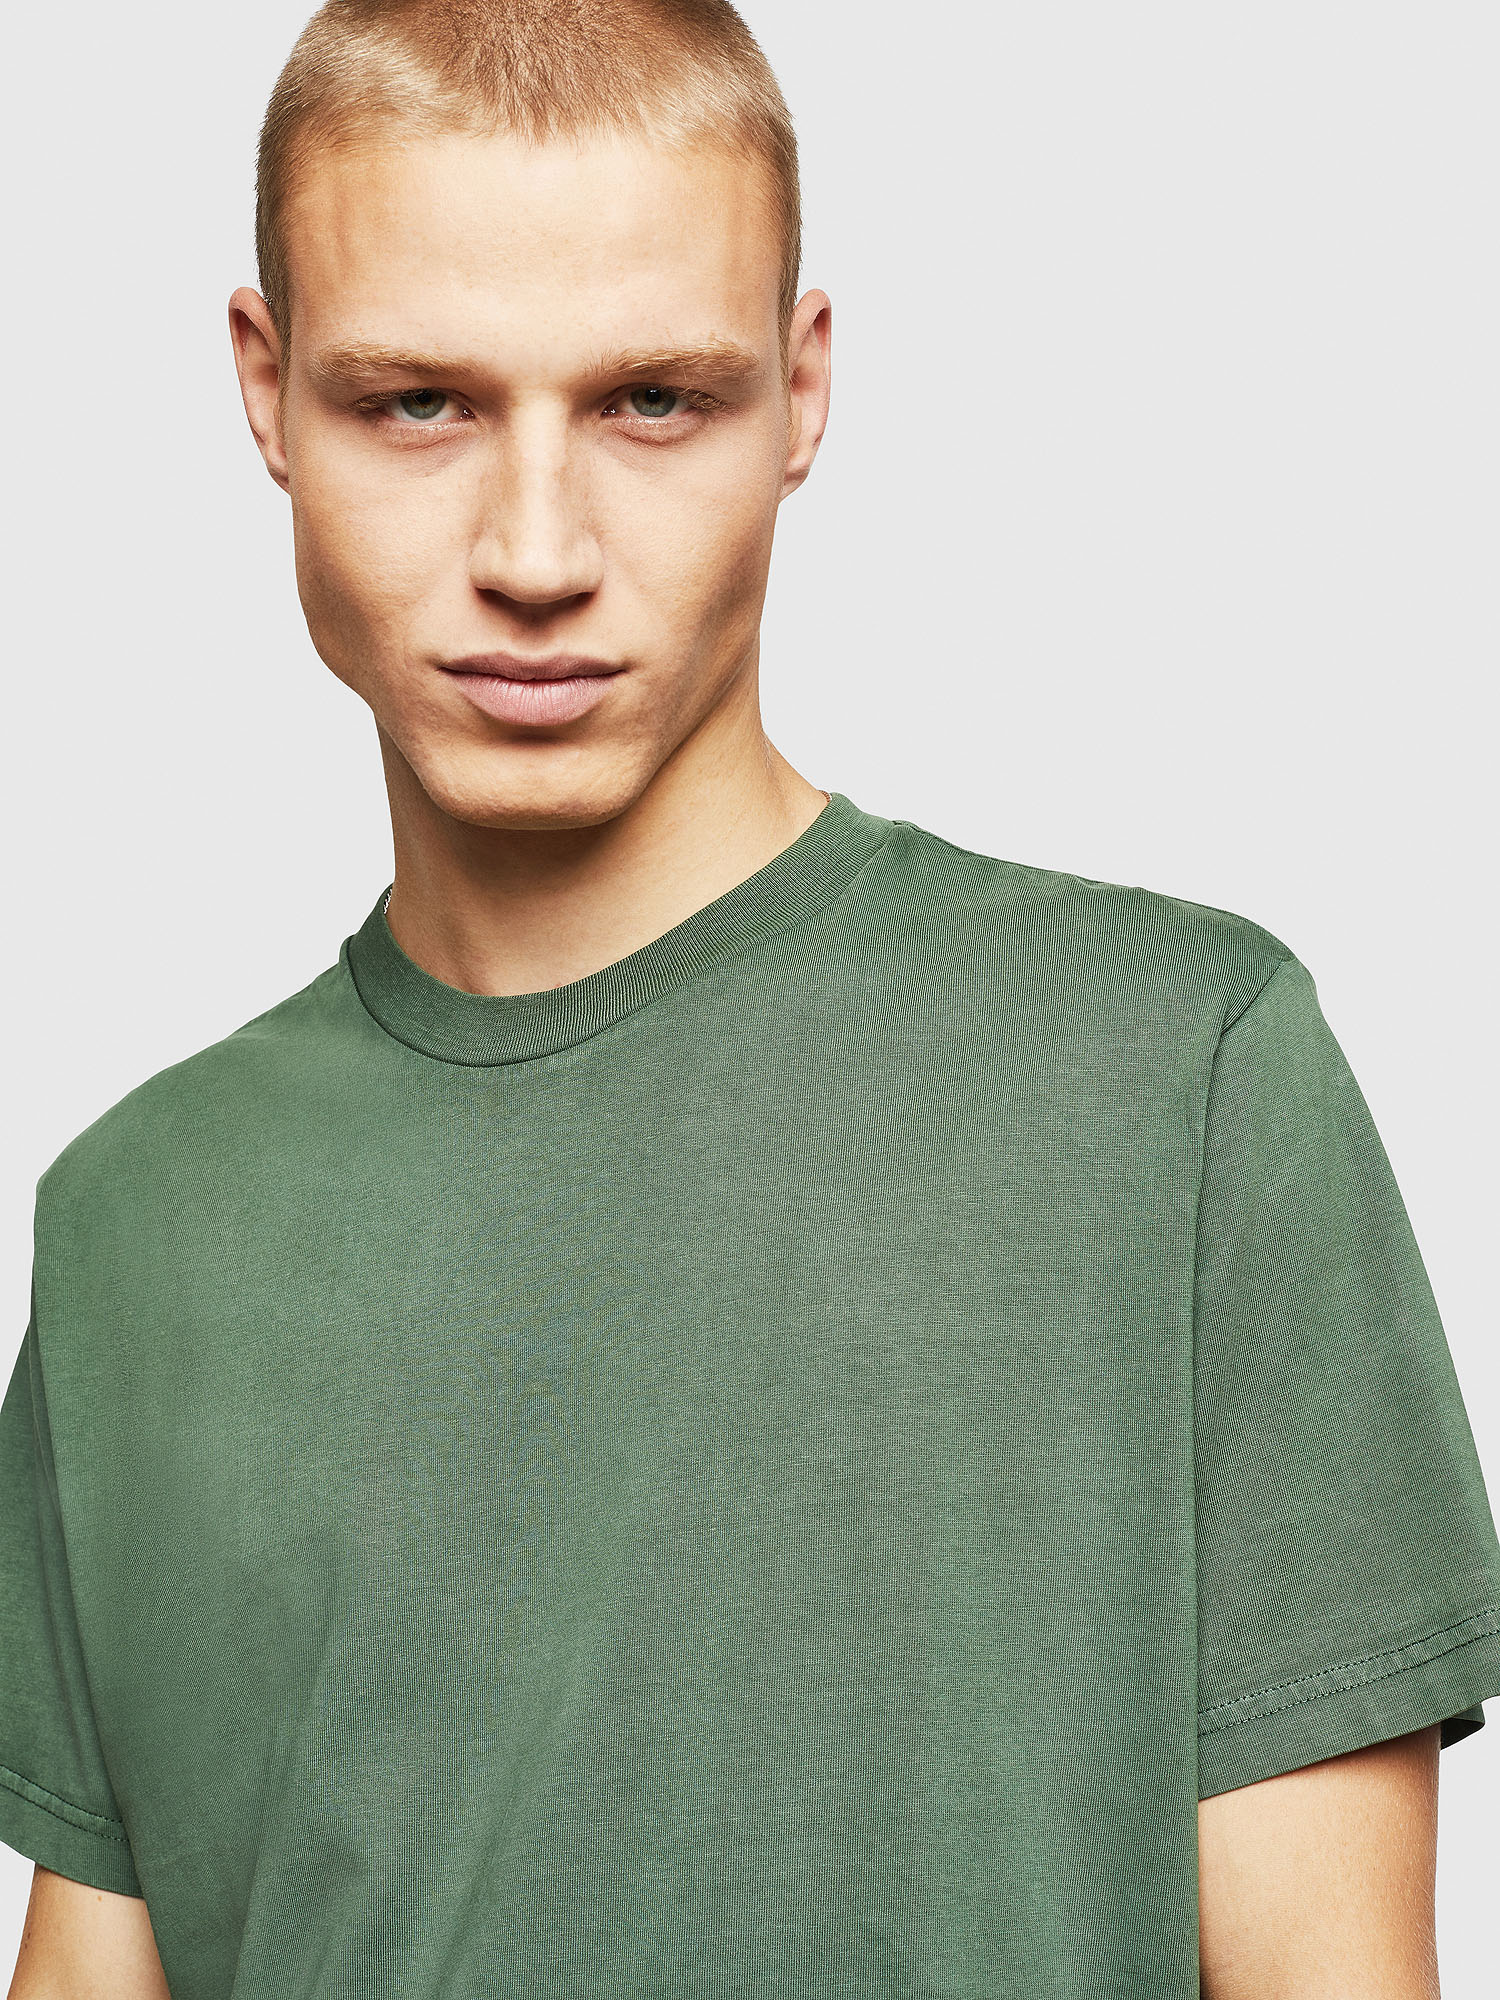 Diesel - T-THURE,  - T-Shirts - Image 4